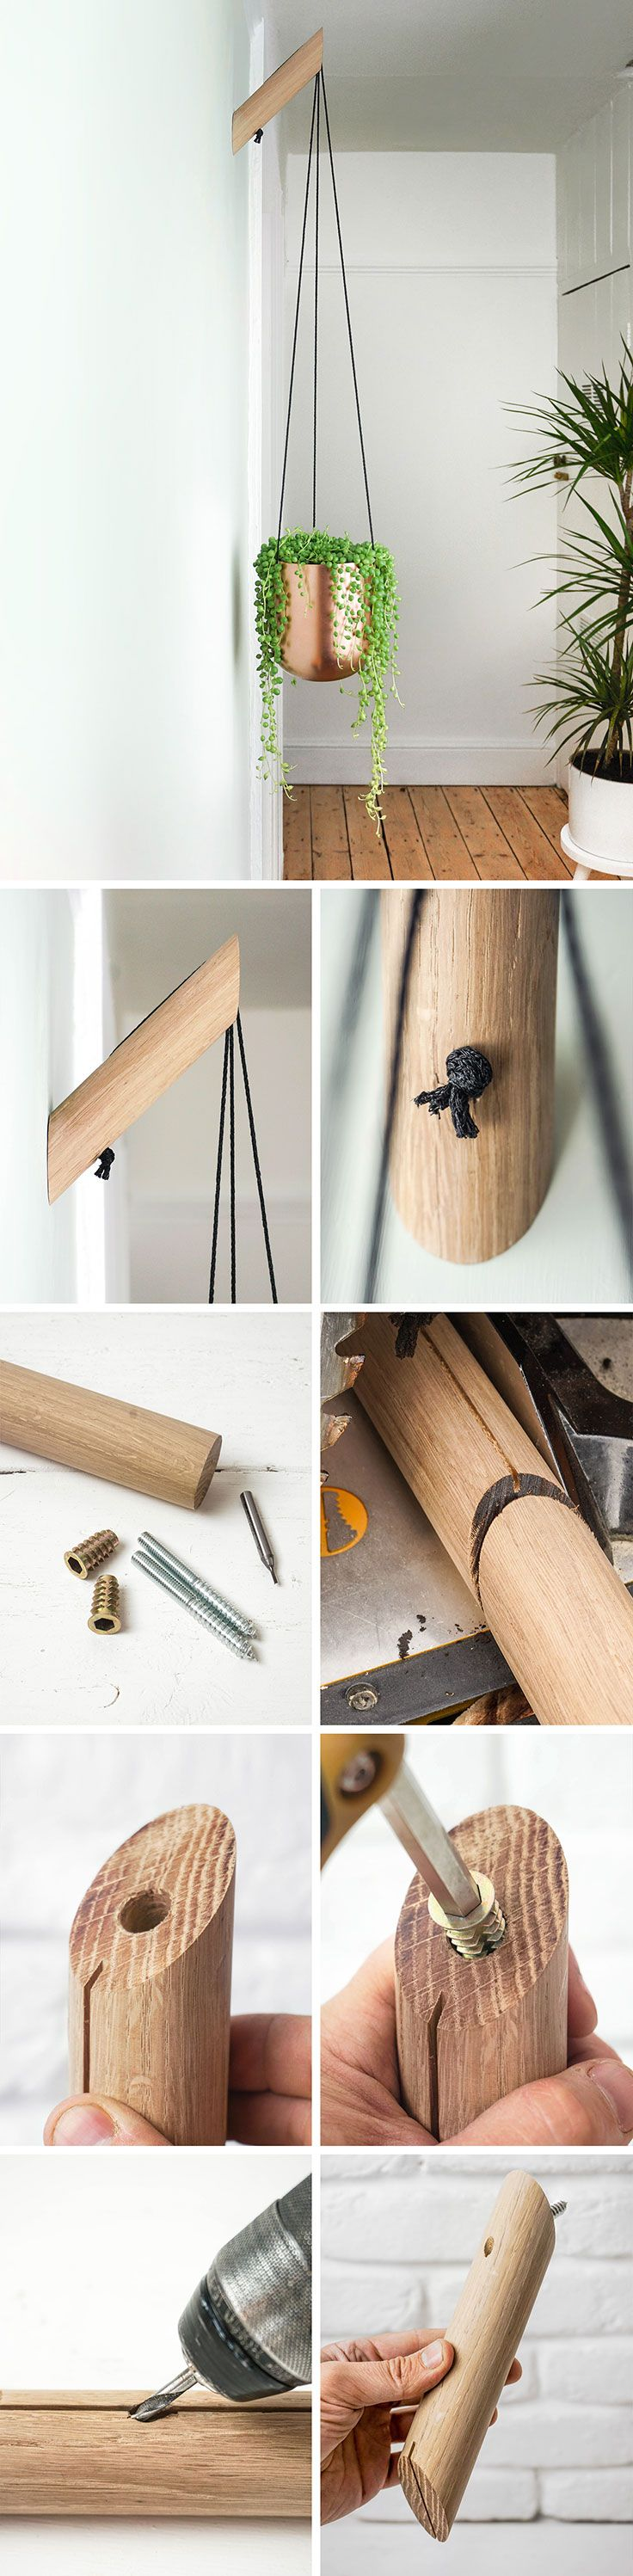 String of banana plant care - A Wooden Plant Hanger Made From Oak Dowel This Simple Wall Bracket Has A Minimal